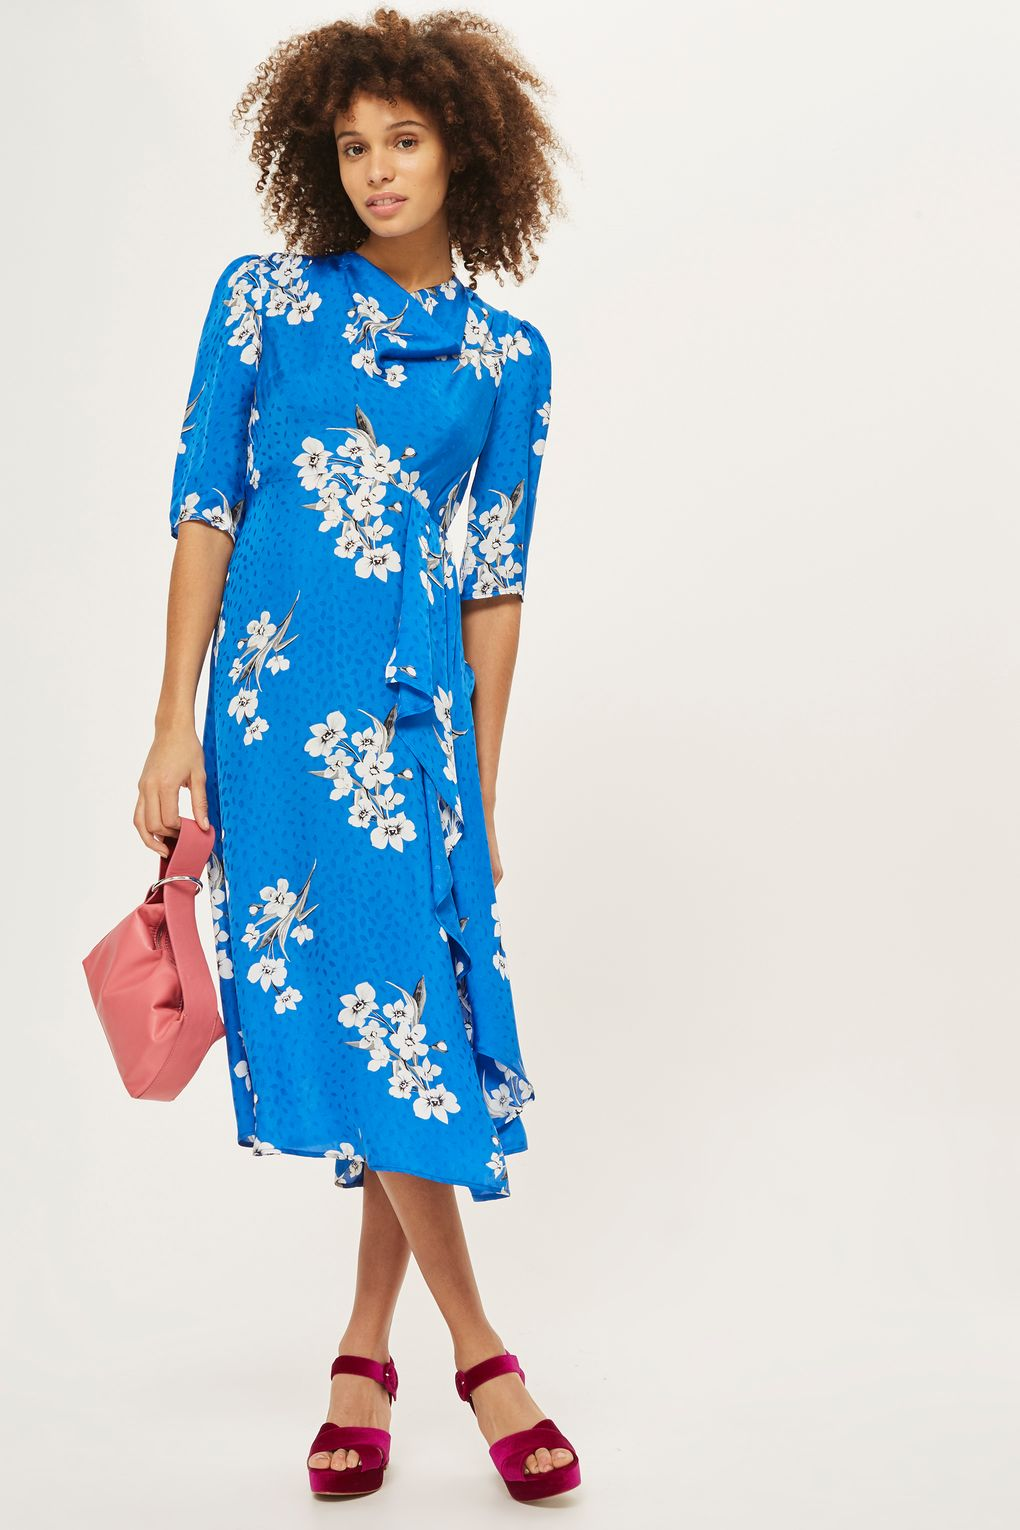 blue-med-dress-floral-print-peasant-midi-pink-bag-red-shoe-sandalh-brun-spring-summer-dinner.jpg